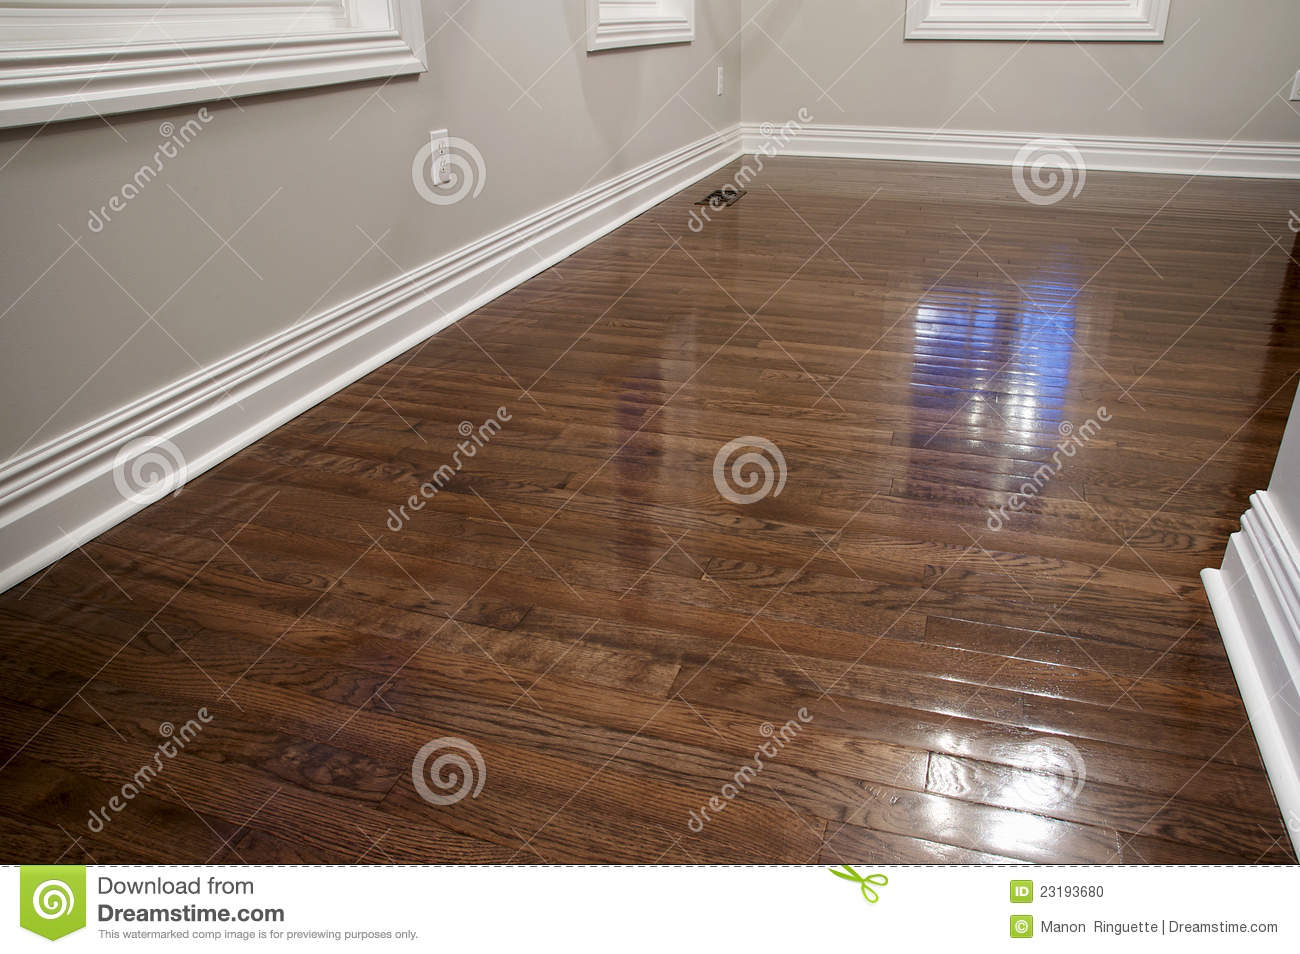 watch master refinishing refinish hardwood of floors floor youtube